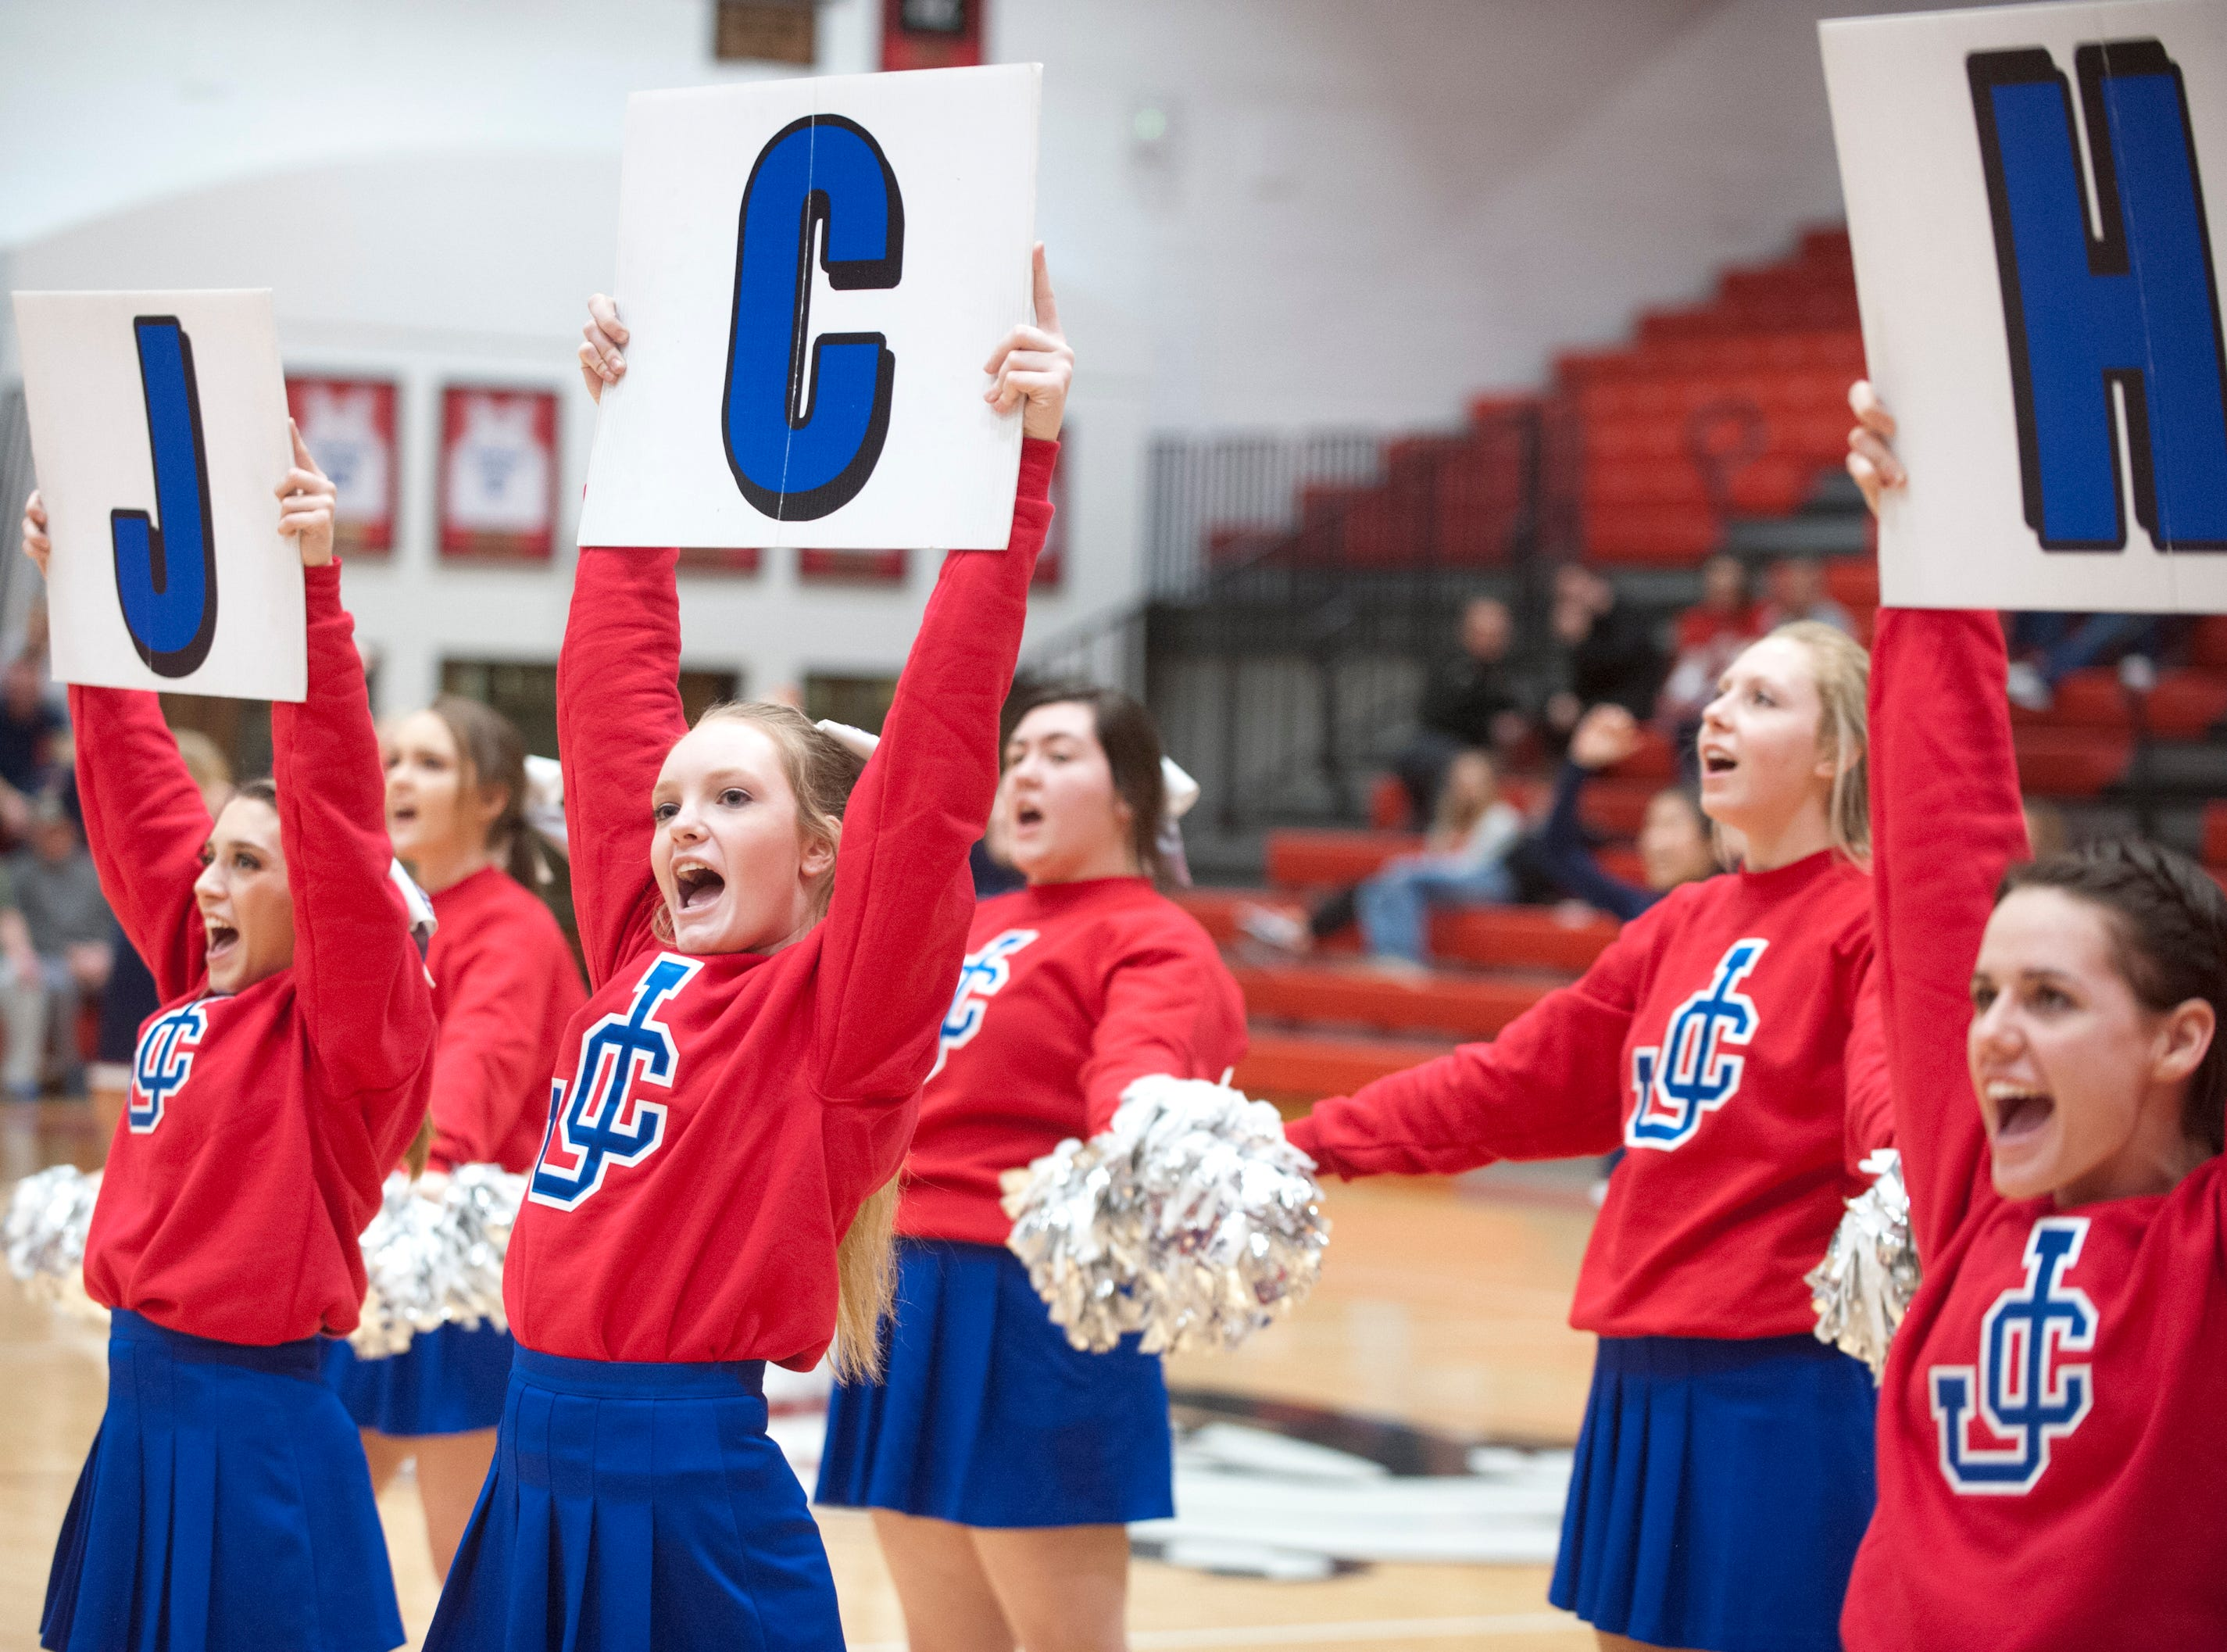 Jennings County cheerleaders root for their team.04 February 2019